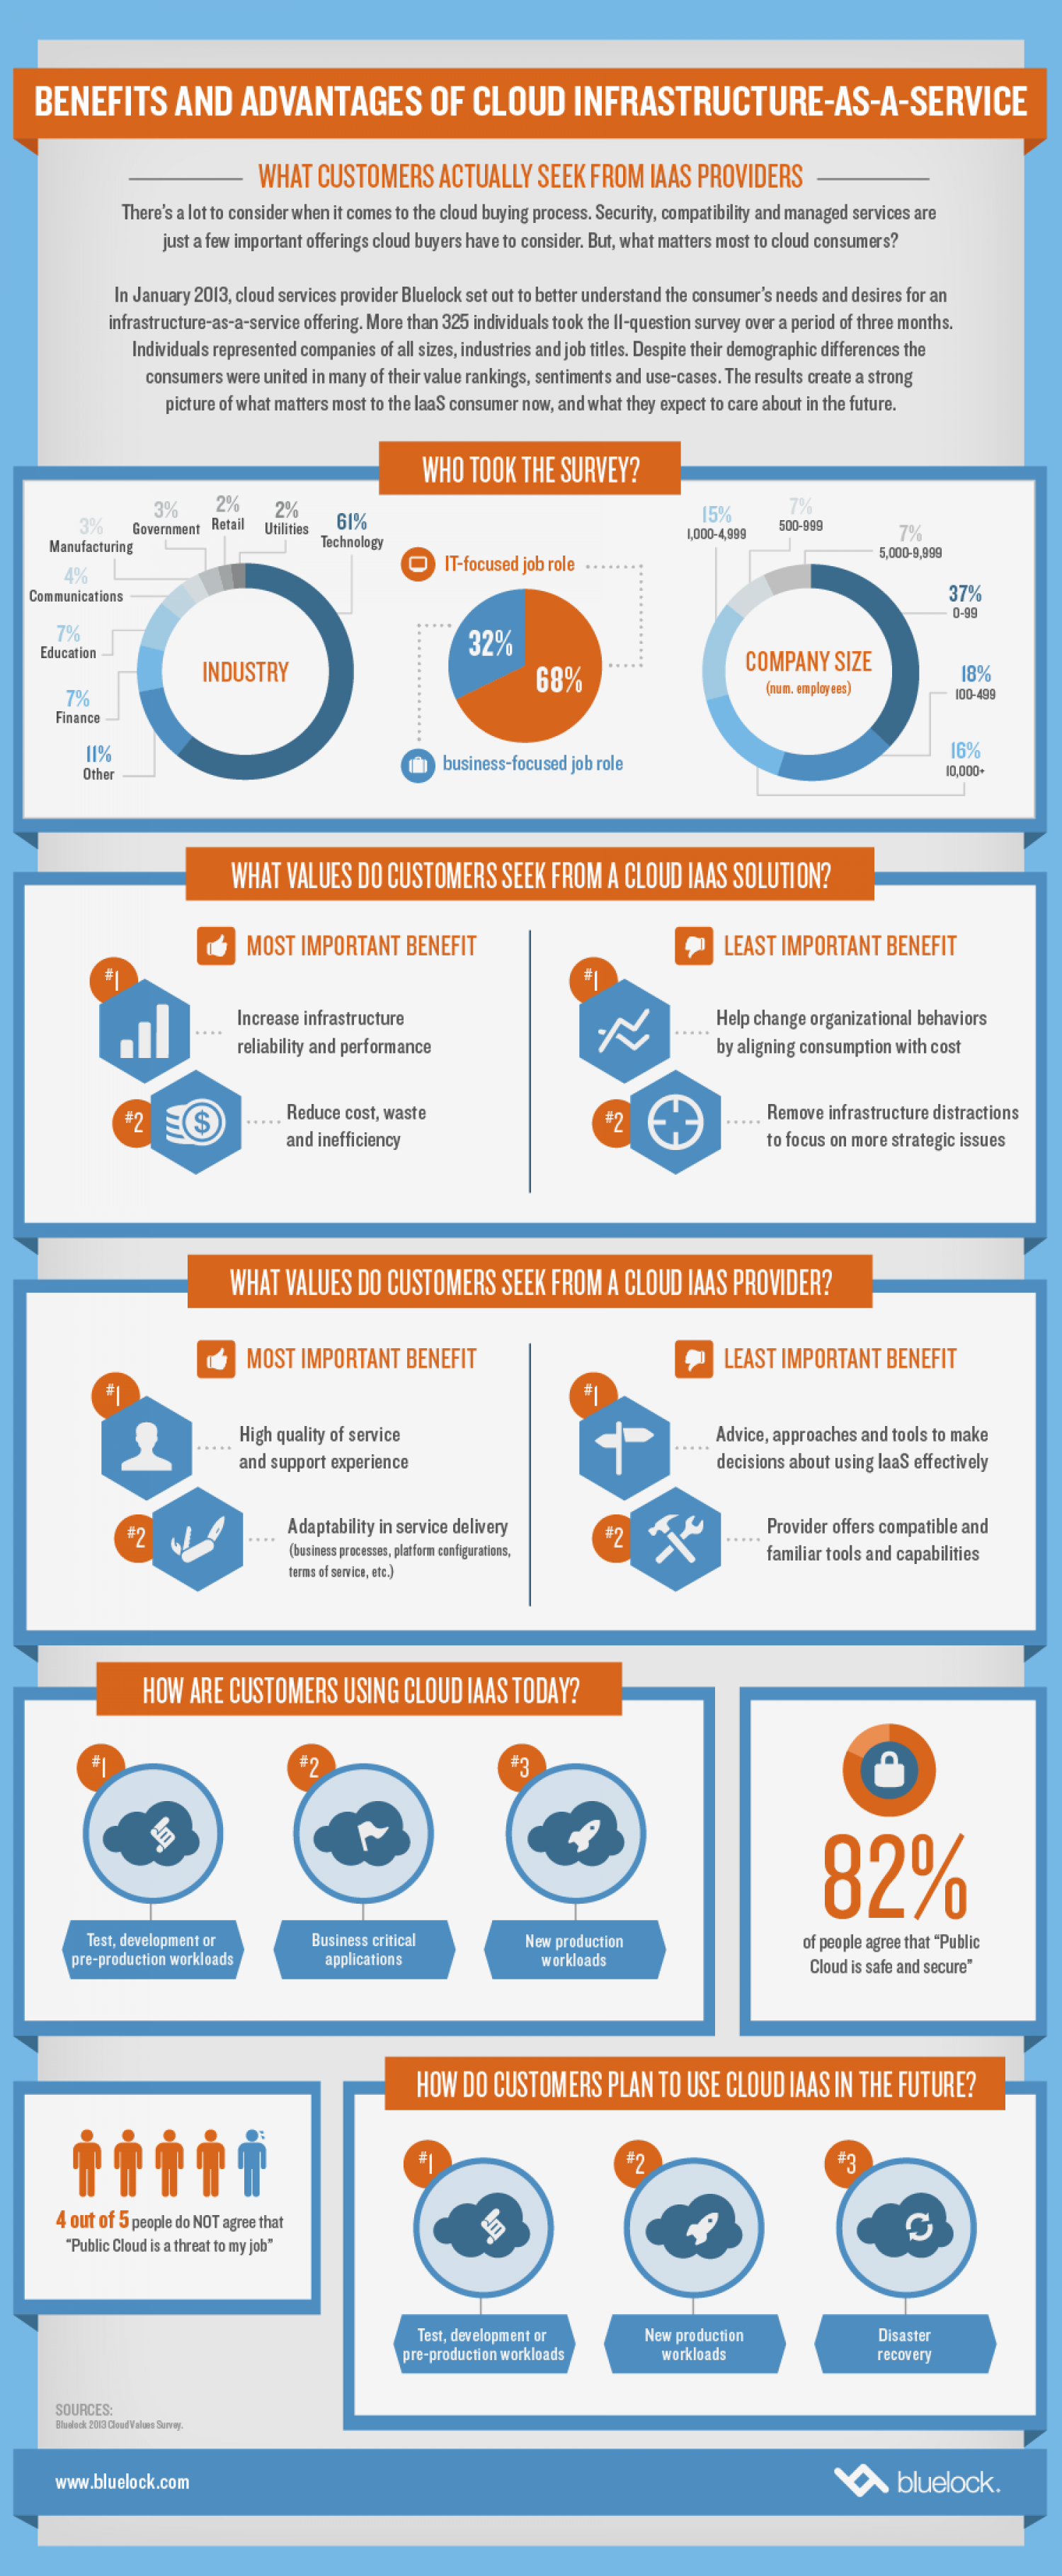 Benefits and Advantages of Cloud Infrastructure as a Service Infographic